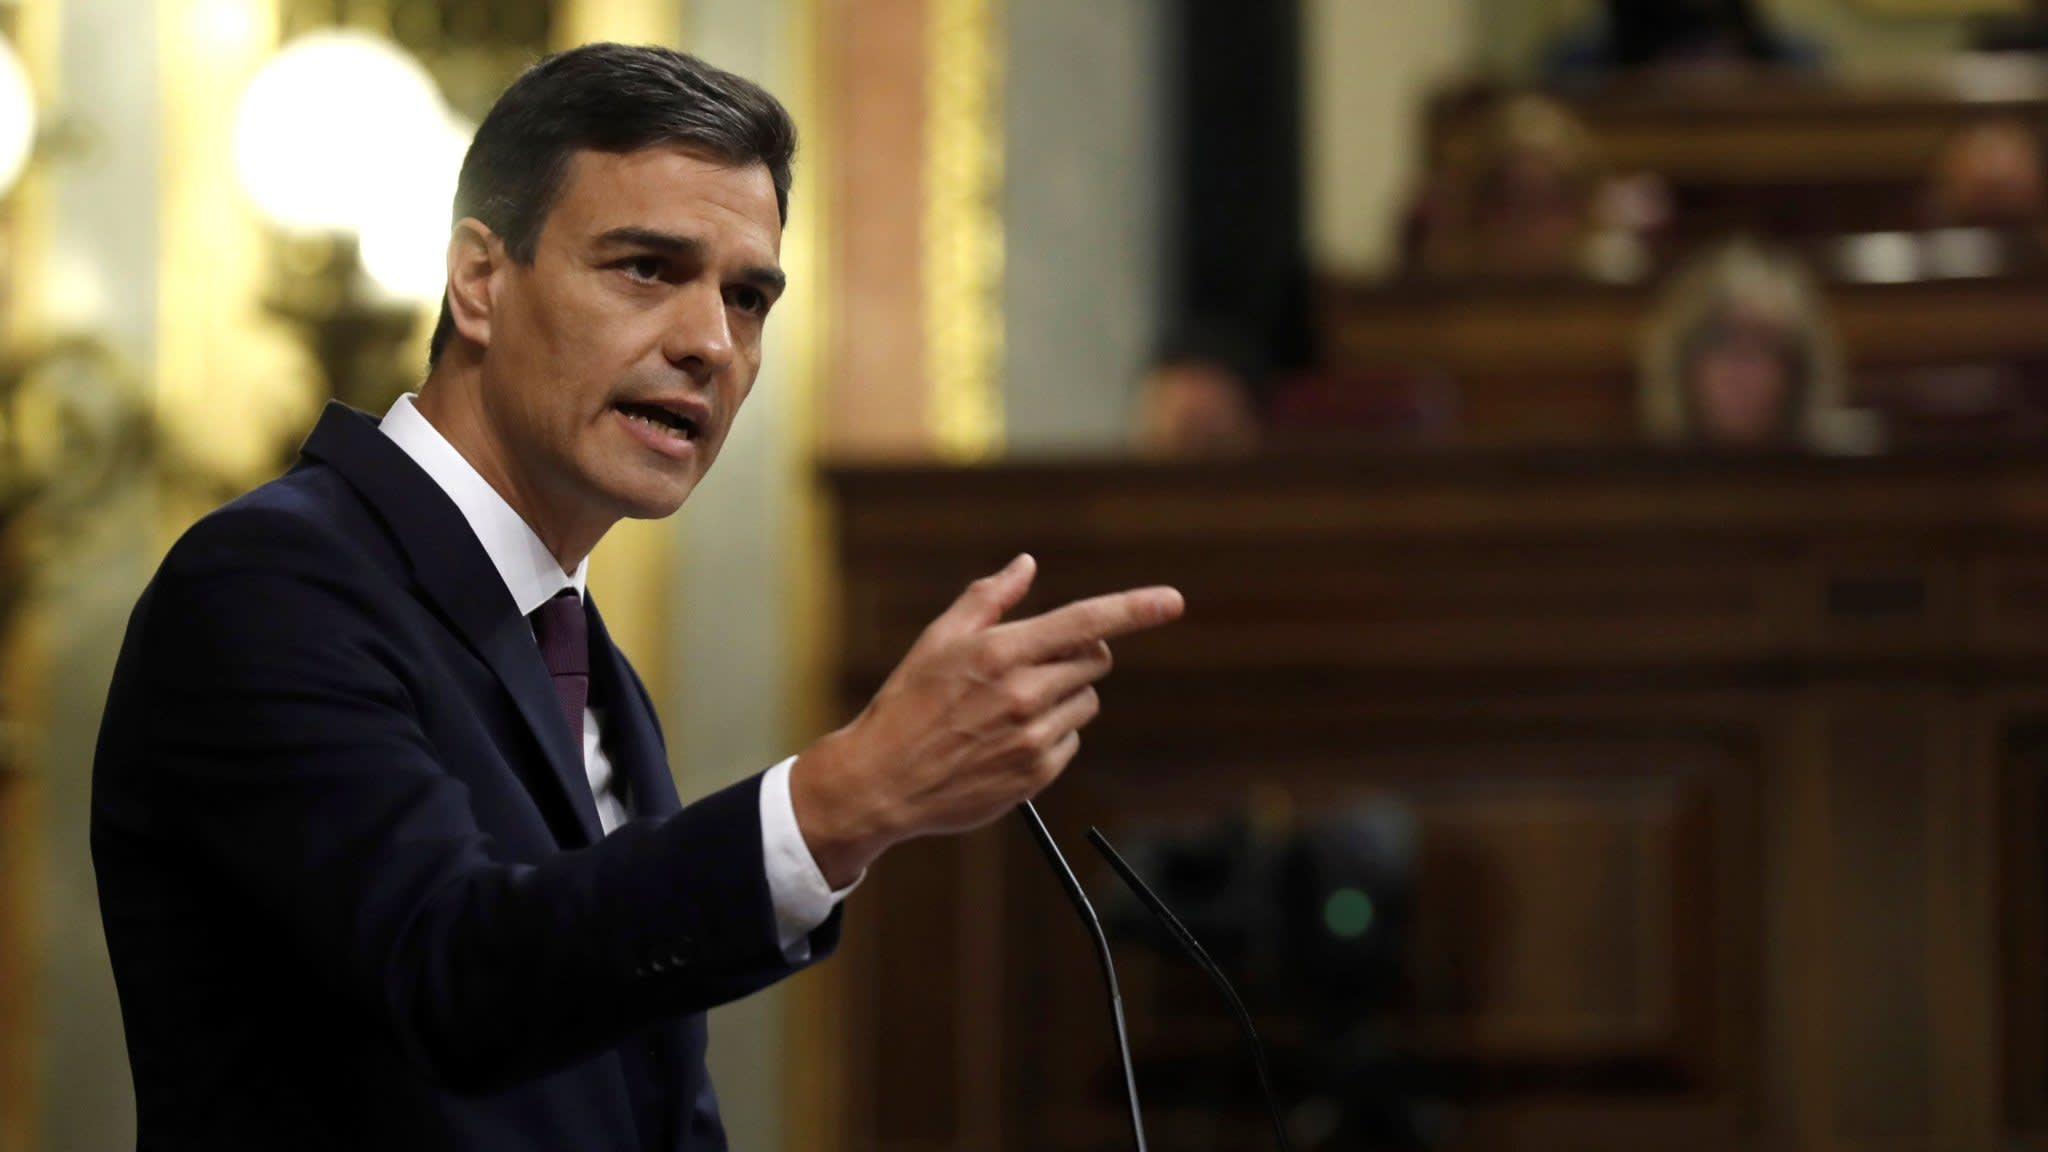 Spain's new prime minister vows to raise taxes and spend more